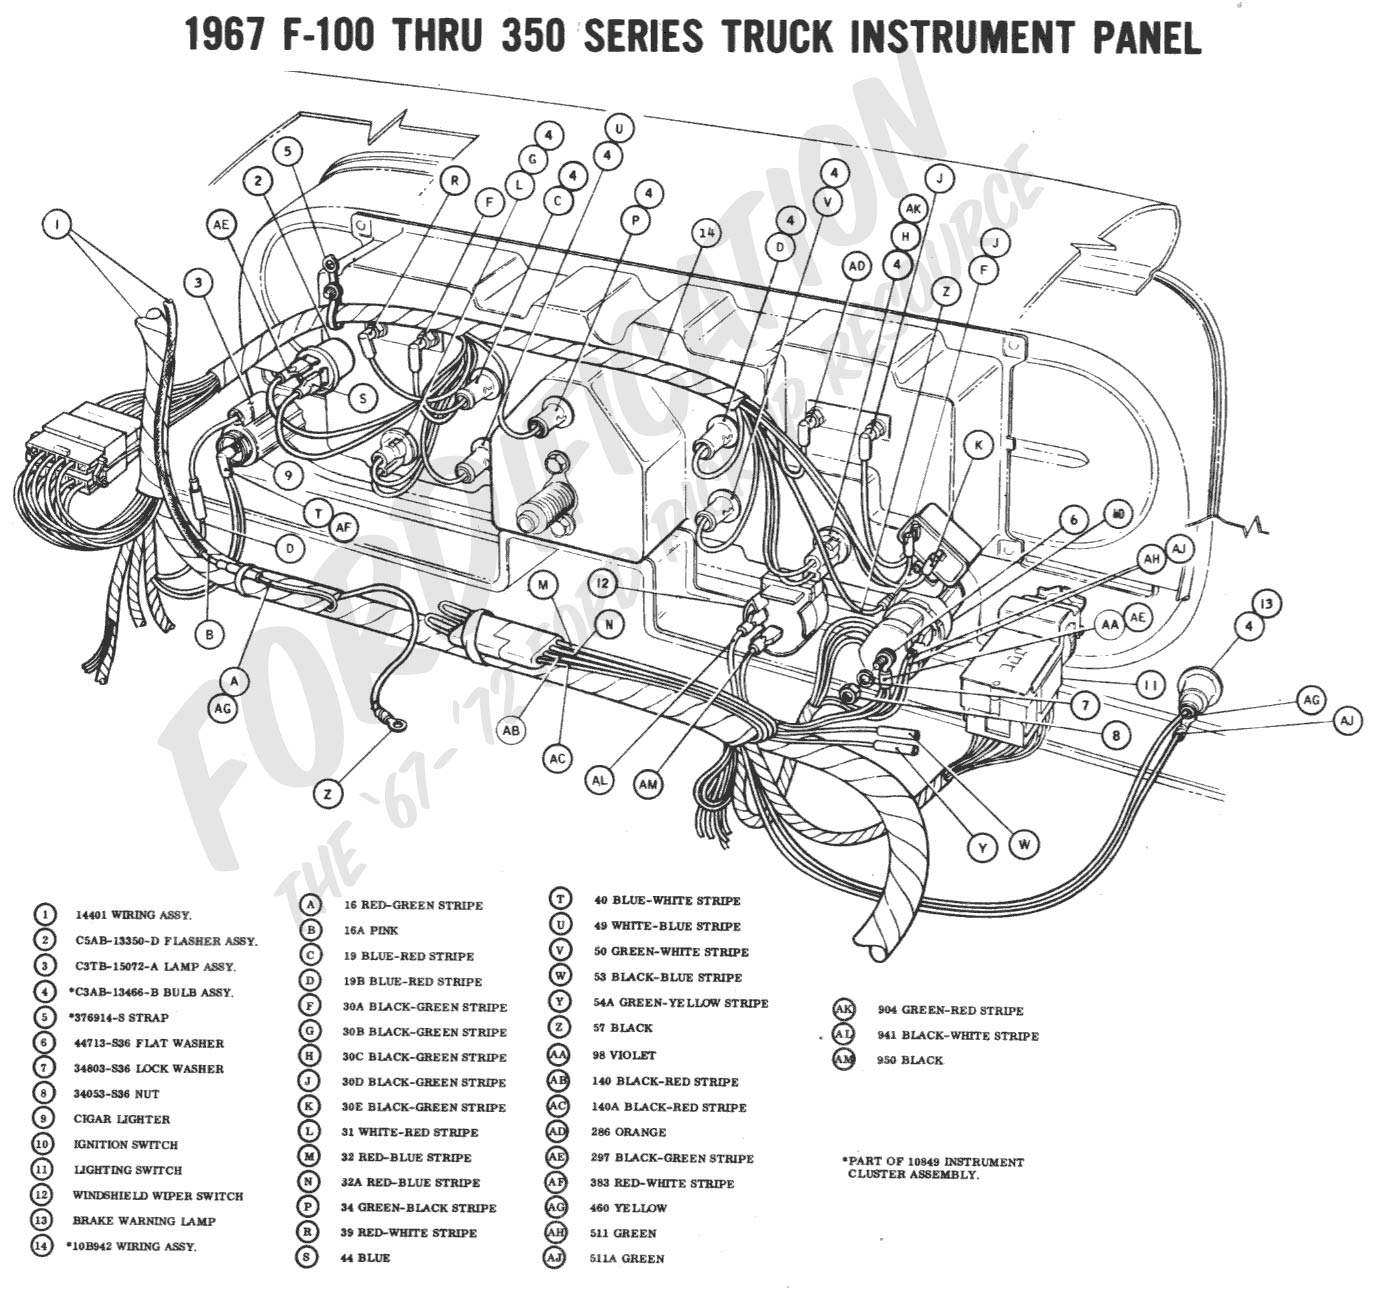 1972 ford f100 wiring diagram 2002 jetta 1 8t radio truck technical drawings and schematics section h